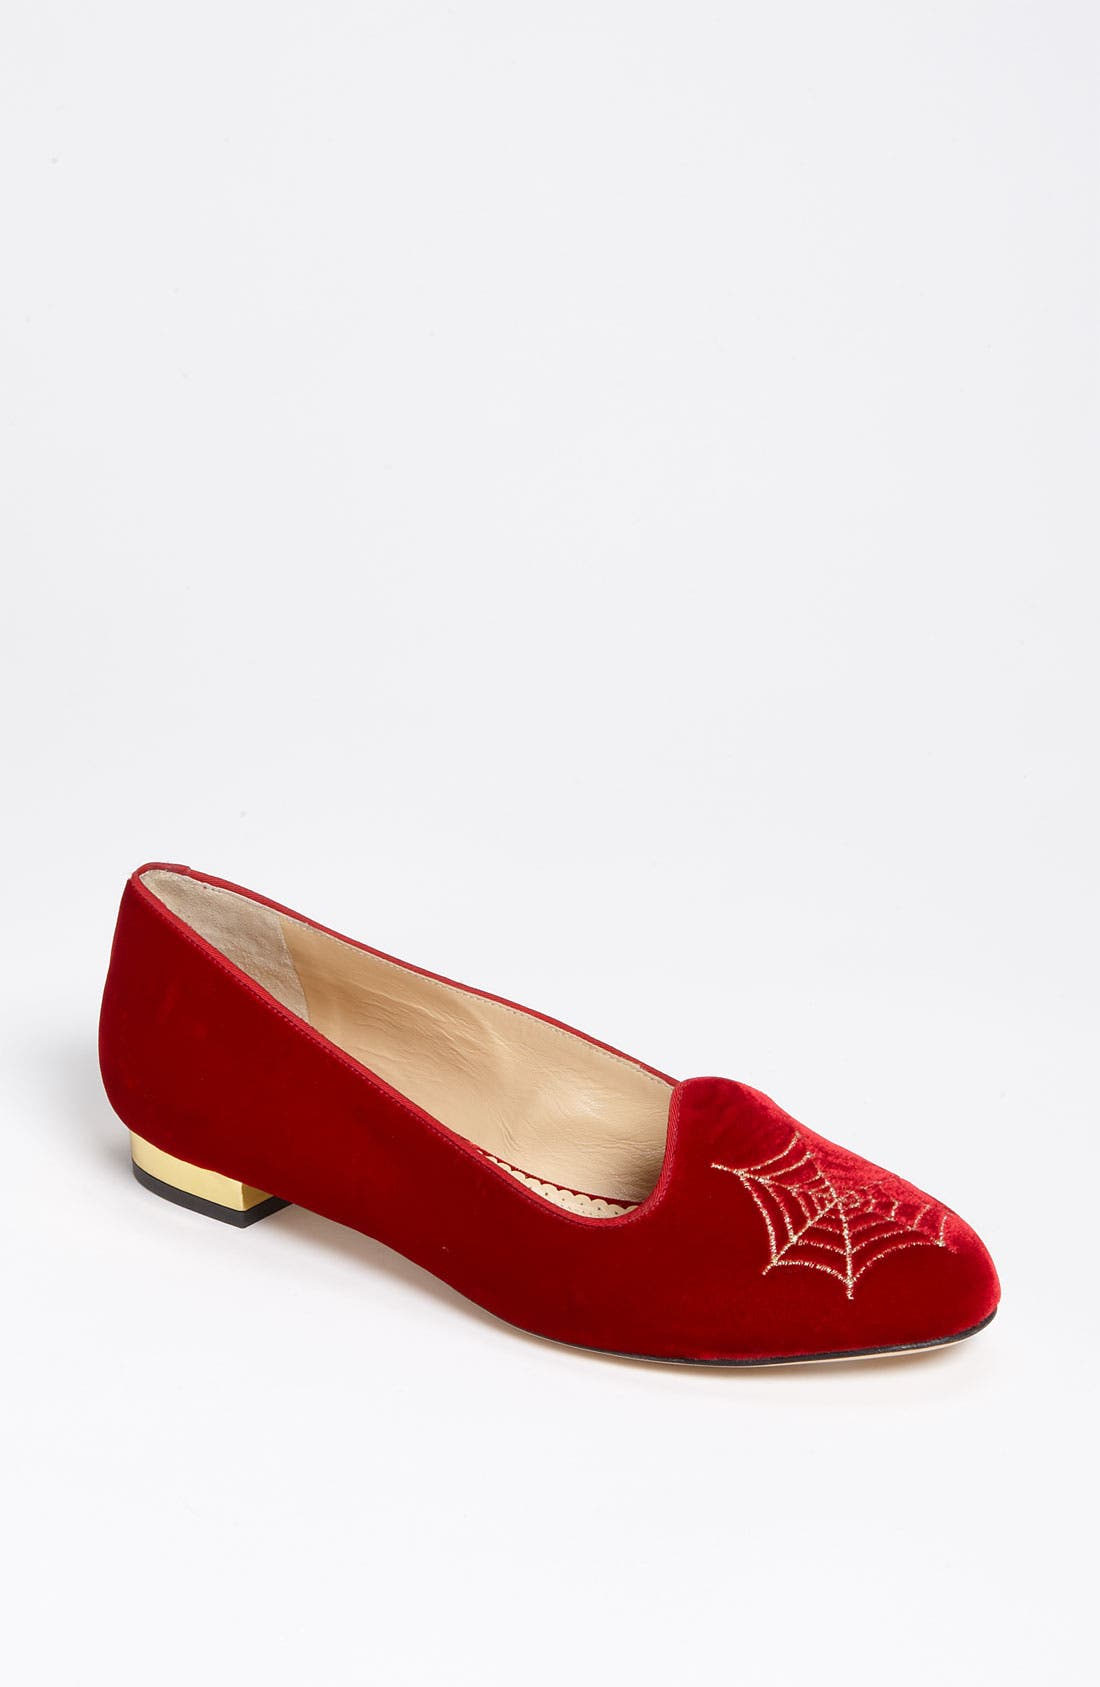 Alternate Image 1 Selected - Charlotte Olympia Smoking Slipper